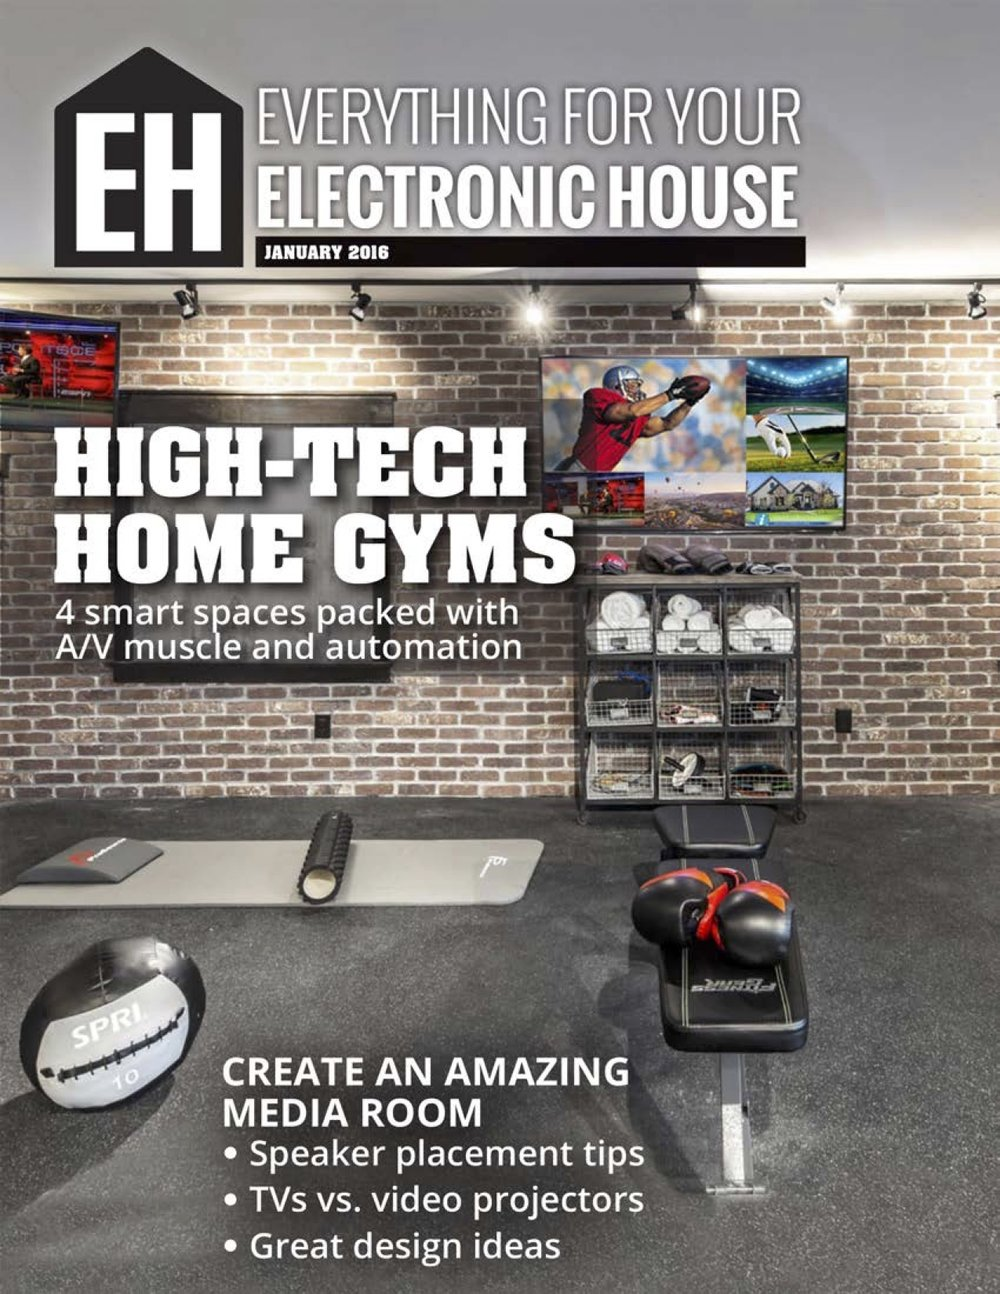 Electronic-House-Jan-2016-Issue-MRG-Theater.jpg